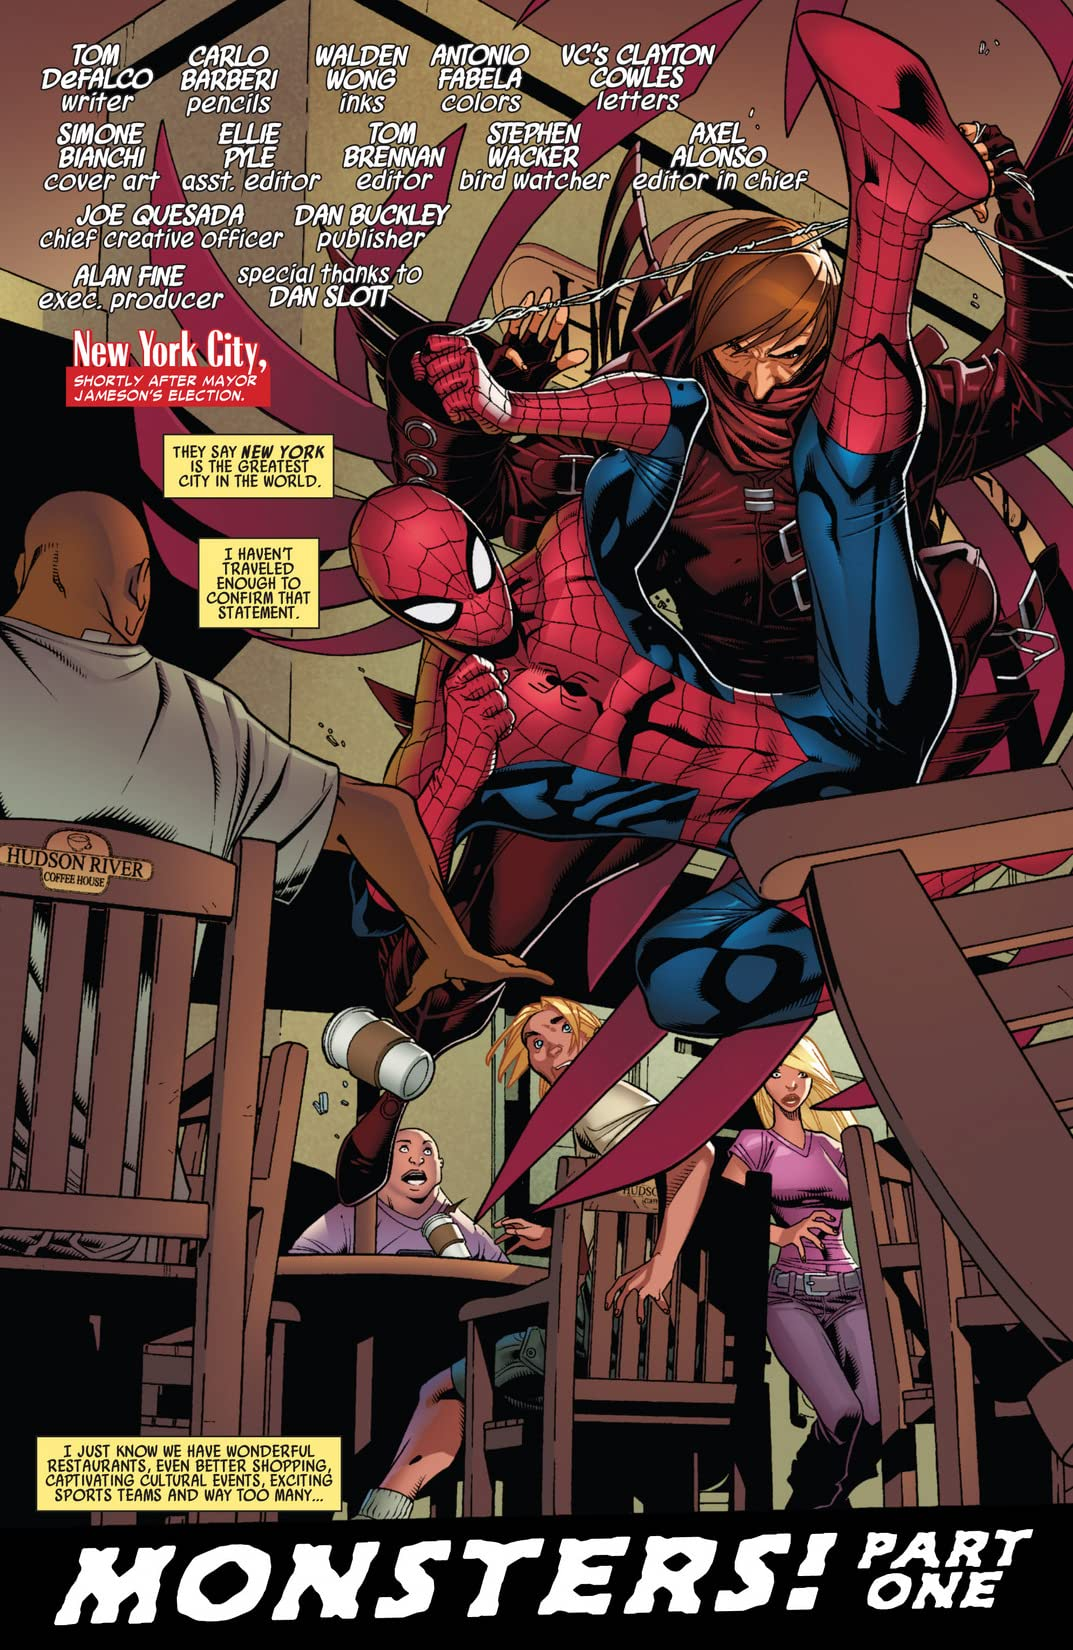 Sensational Spider-Man (2006-2007) #33.1